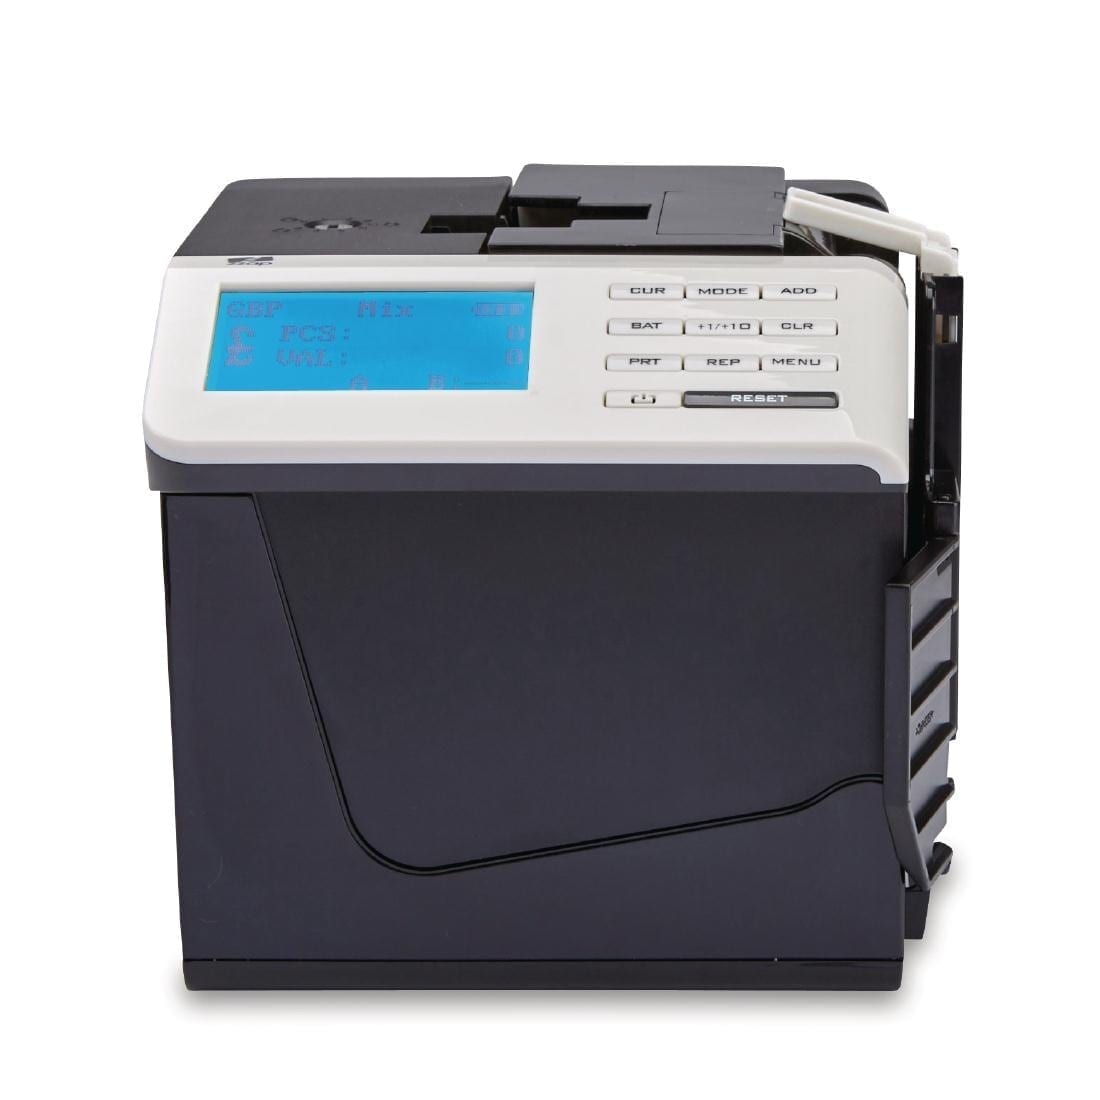 Zzap Banknote Counter 250notes/min - 4 currencies